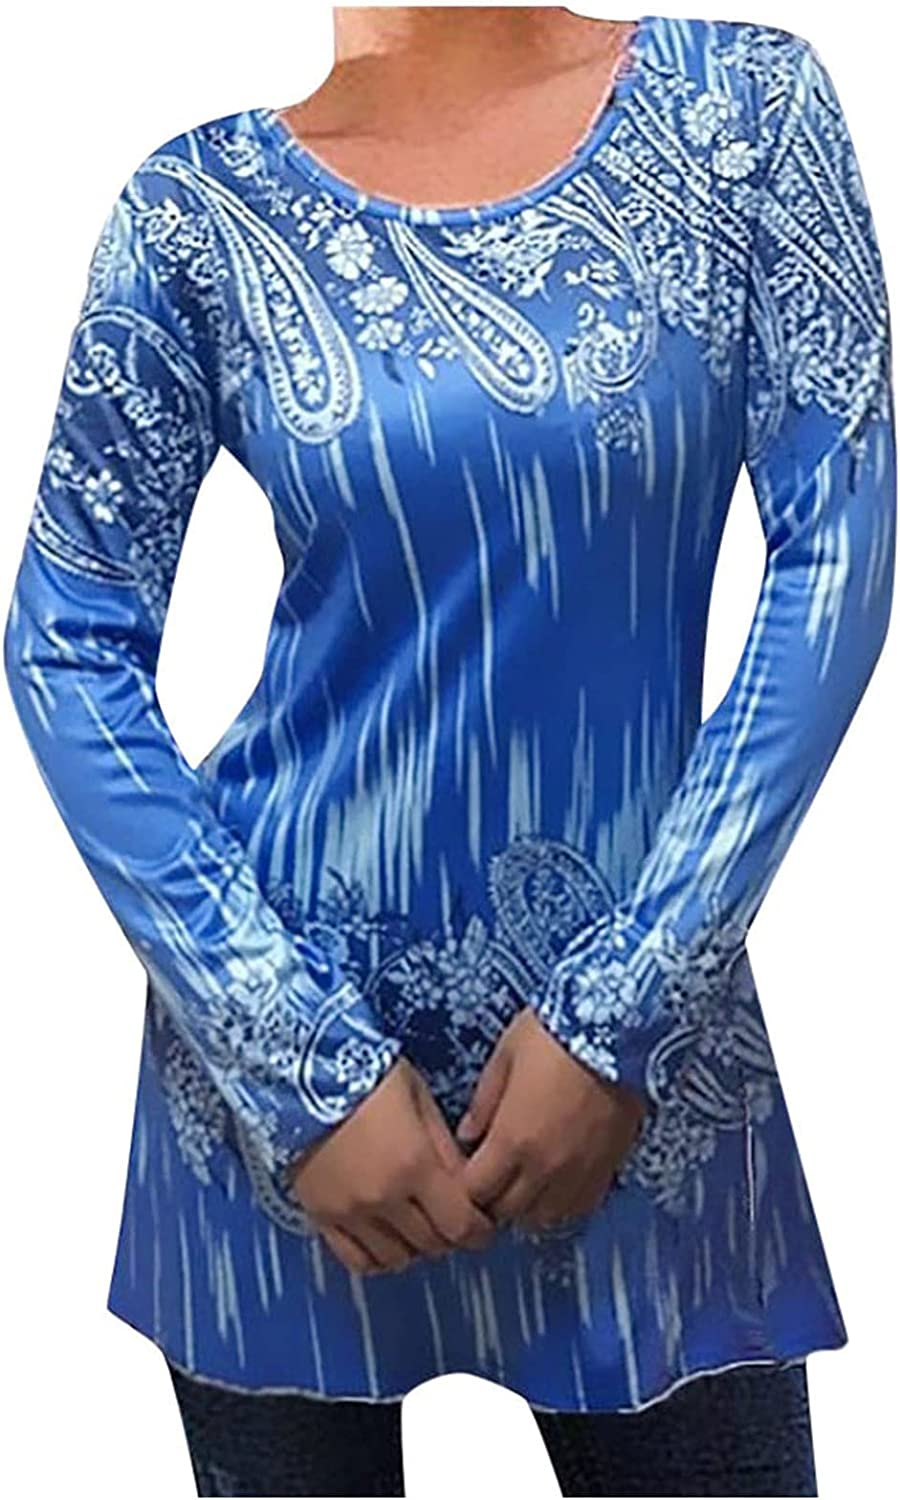 Olivcker Women Tunic Tops Flower Print Round Neck Long Sleeve Casual Comfy Soft Daily Fashion Blouses Slim Shirts